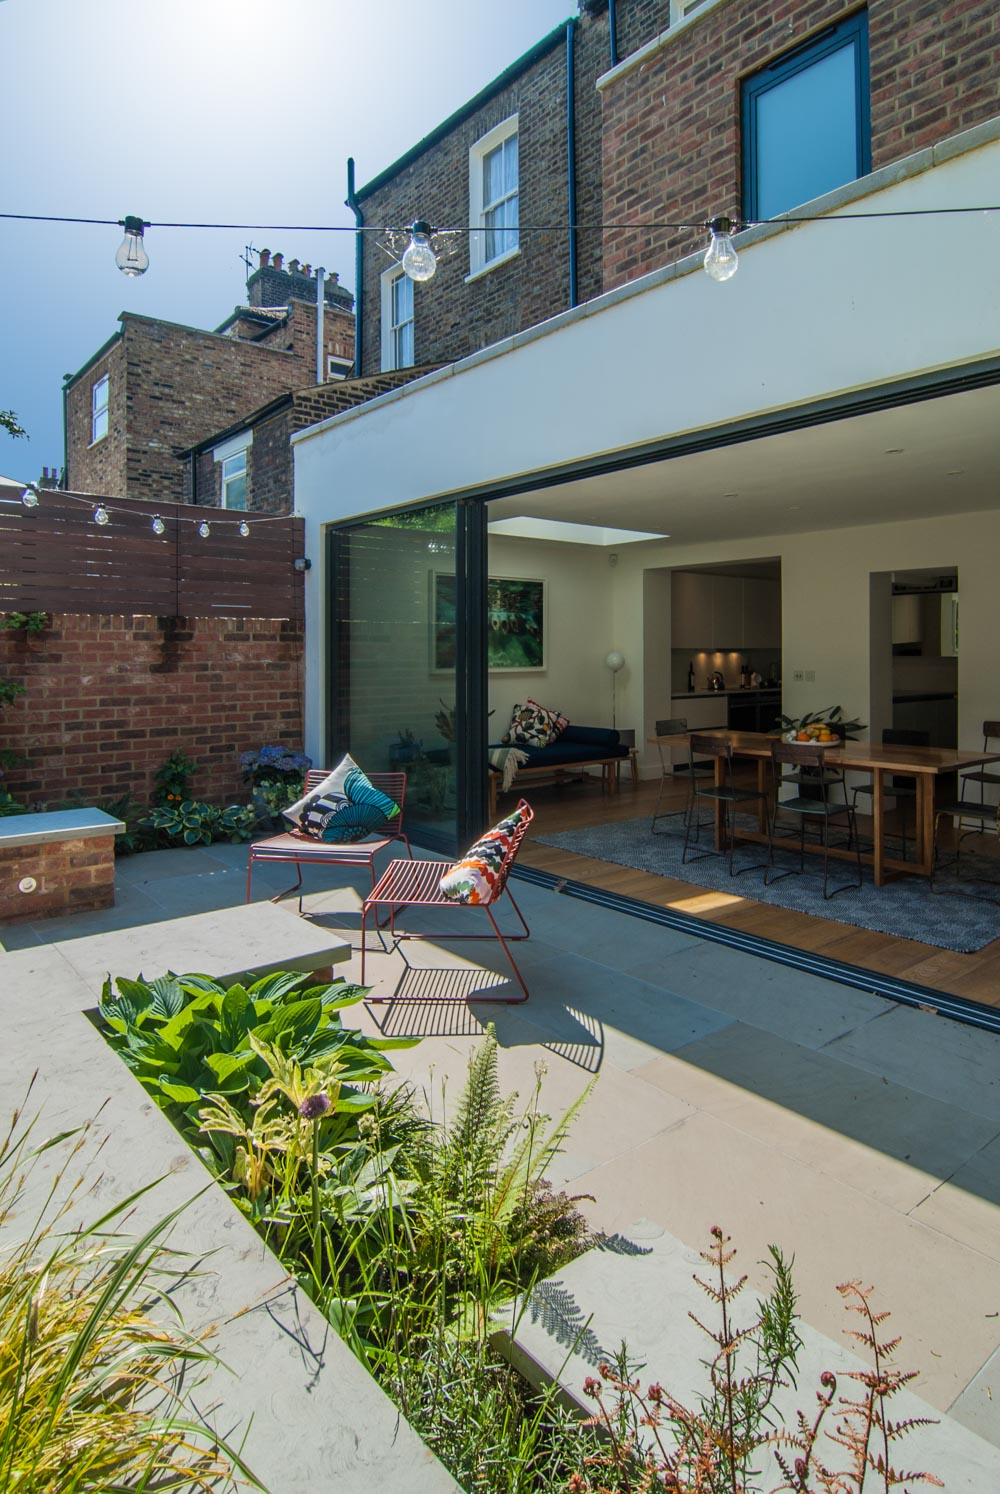 Improved access from dining area to Yorskhire stone patio and garden.